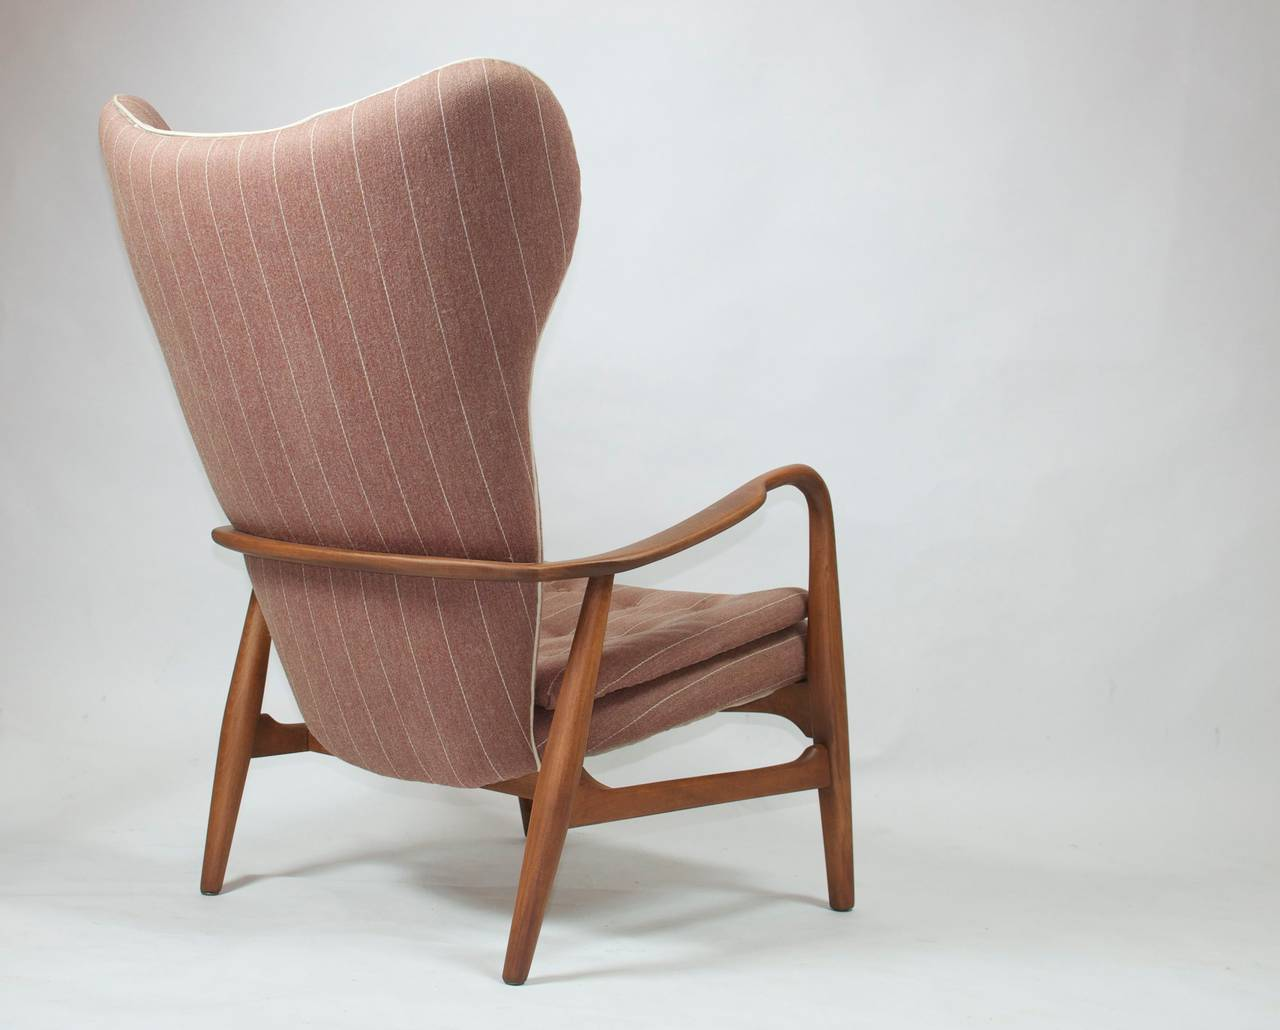 Madsen and Schubell High Back Danish Lounge Chair For Sale at 1stdibs